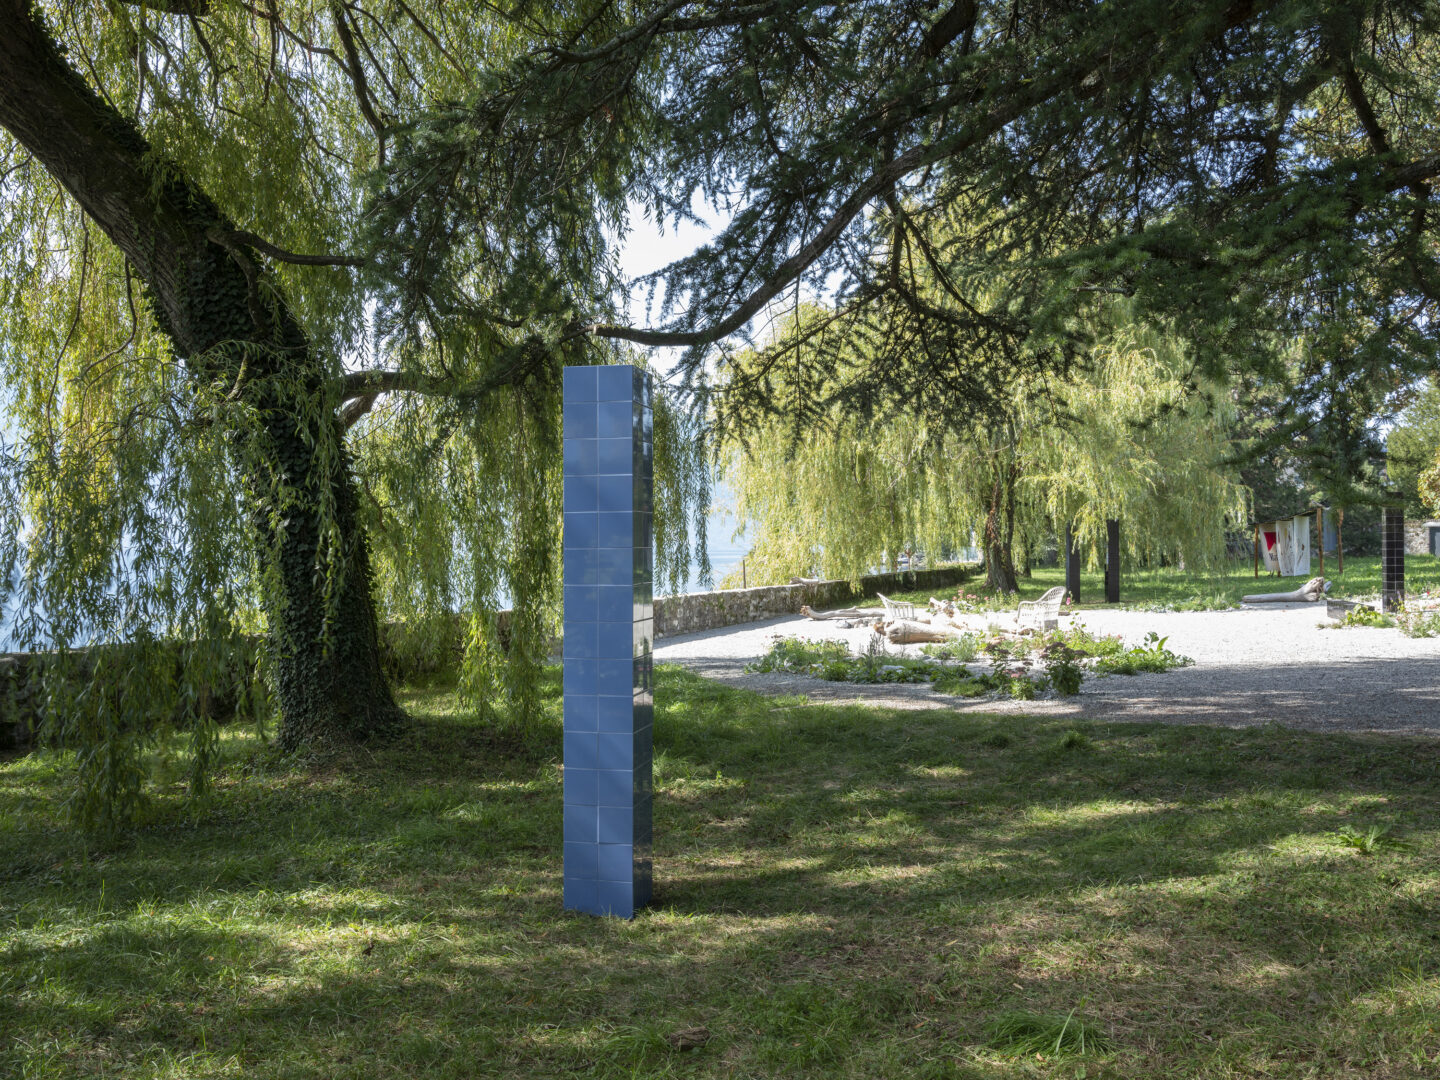 Exhibition View Groupshow «Modern Nature – an hommage to Derek Jarman; view on Prem Sahib, Modern Nature (Single Purple Column), 2019» at La Becque, La Tour-de-Peilz, 2019 / Photo: © Julien Gremaud / Courtesy: the artist and La Becque©